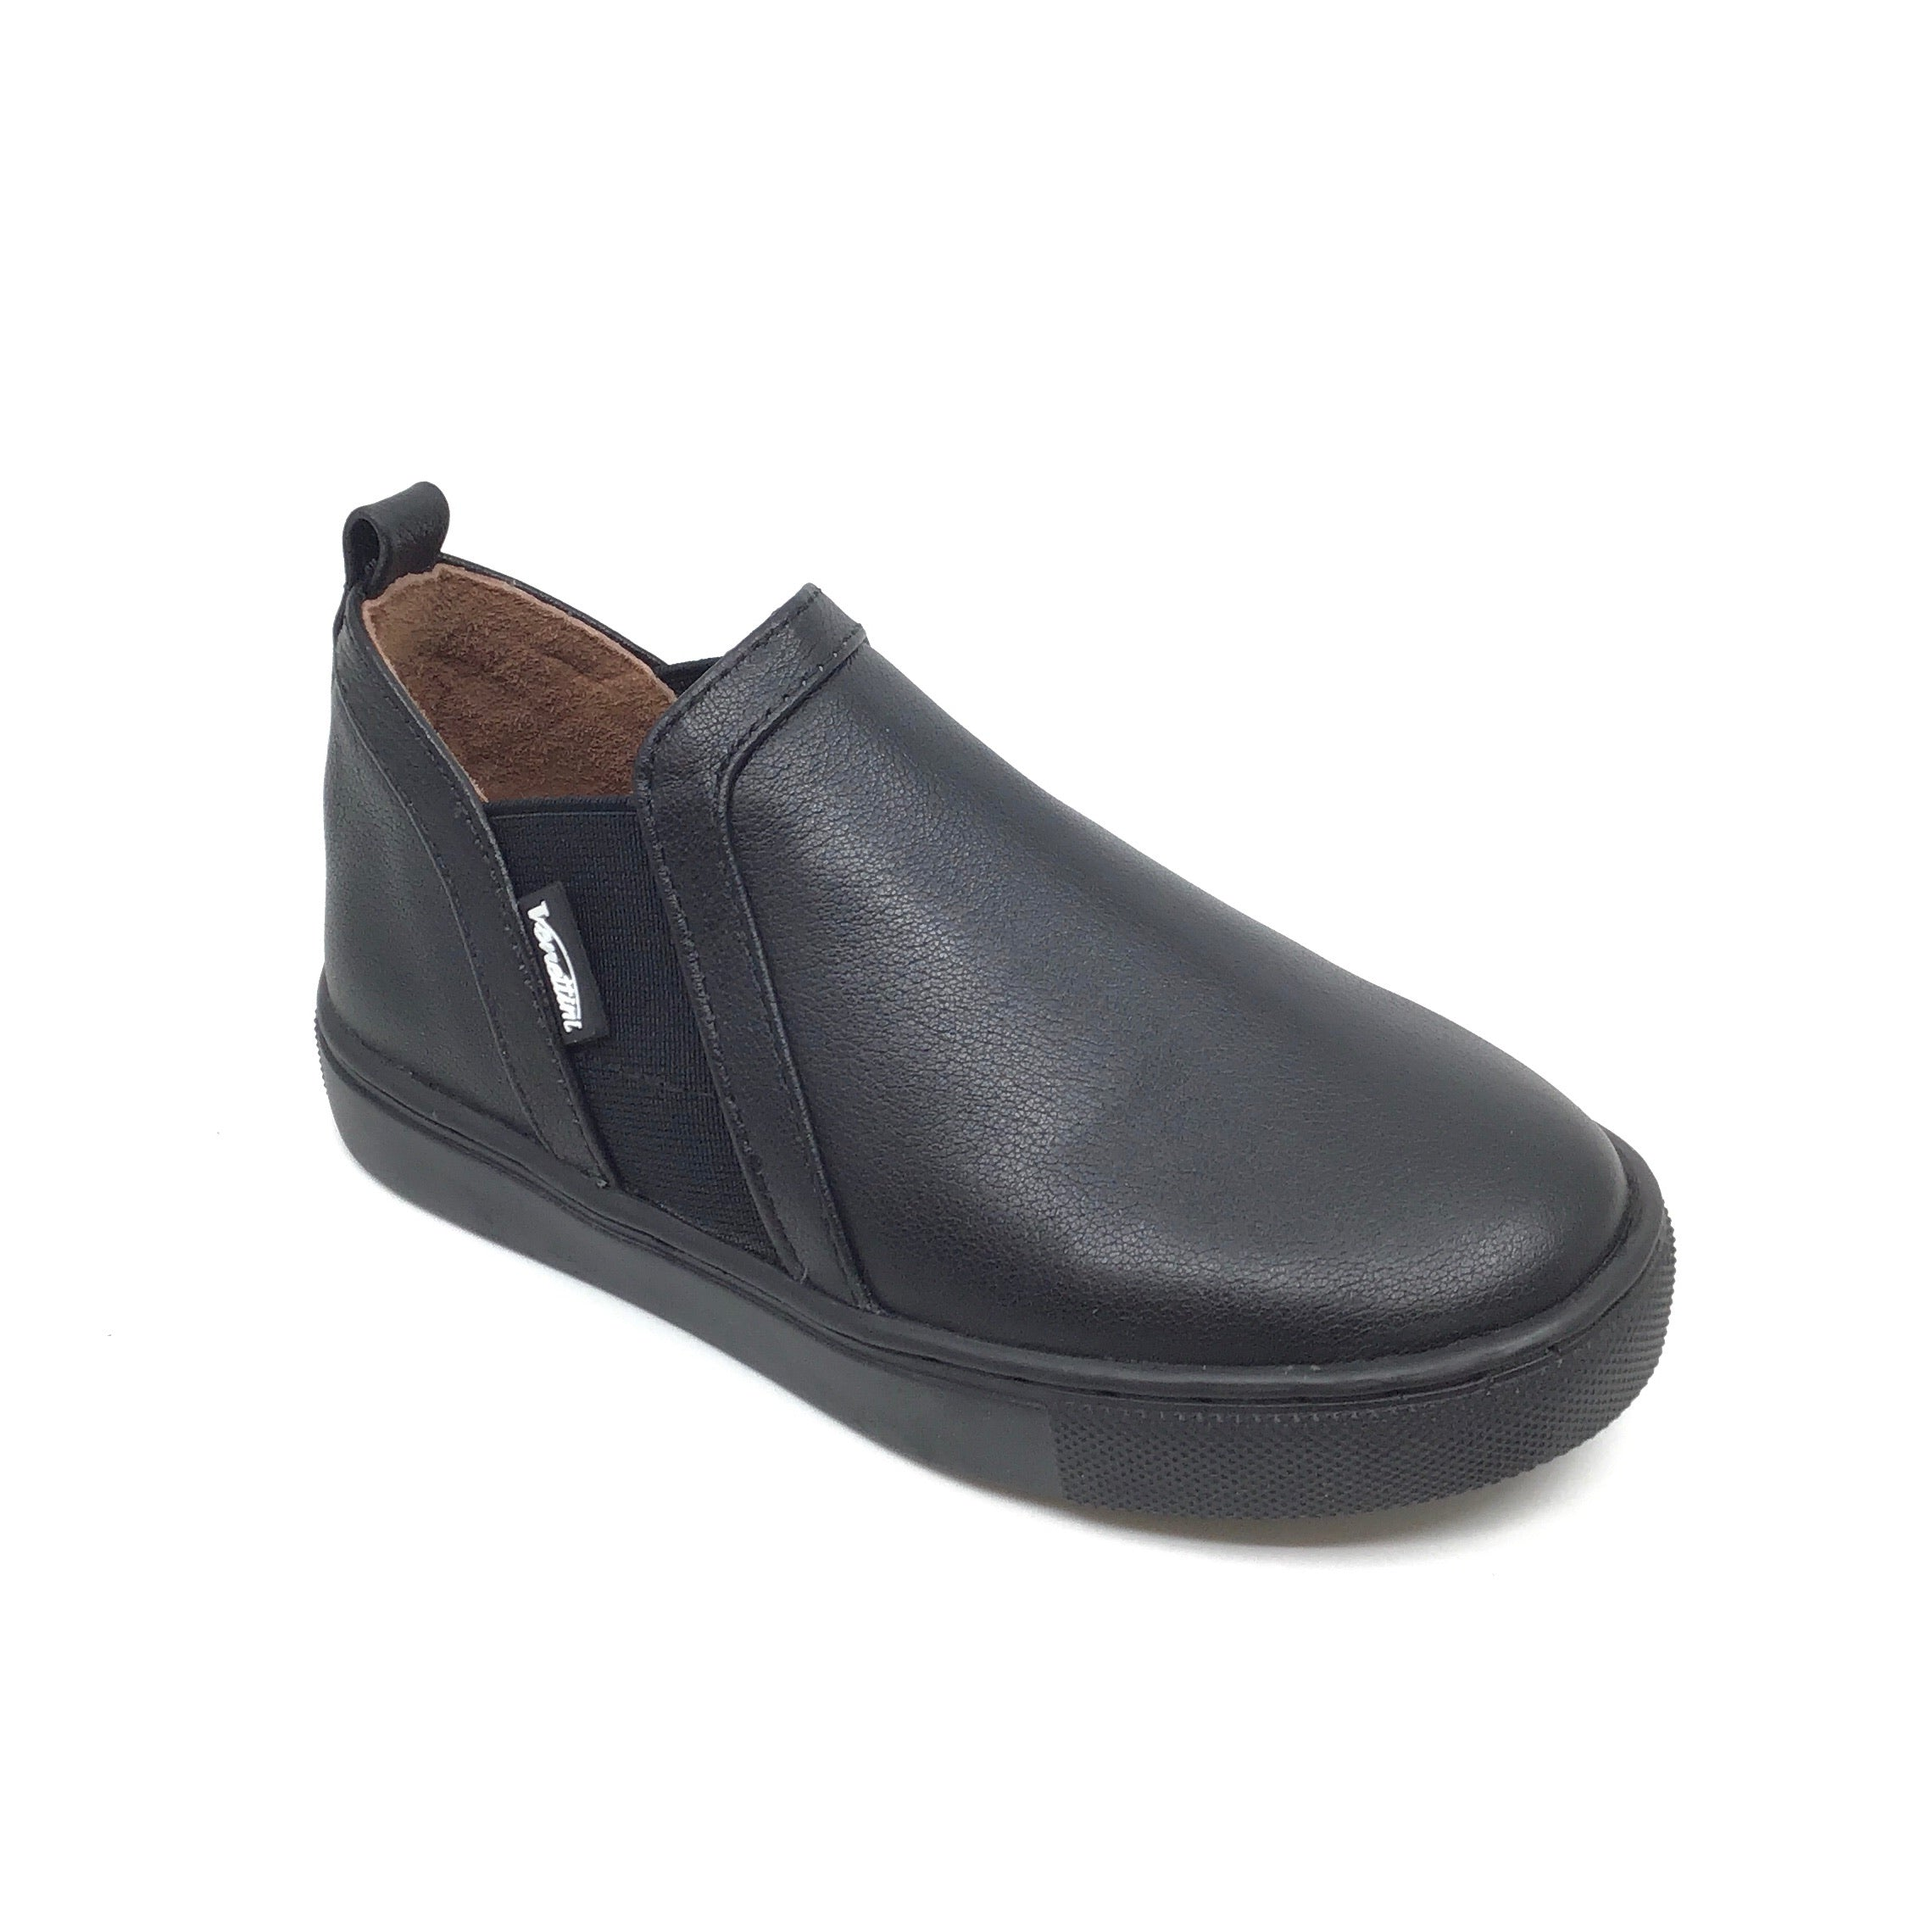 Venettini Black Elastic Slip On